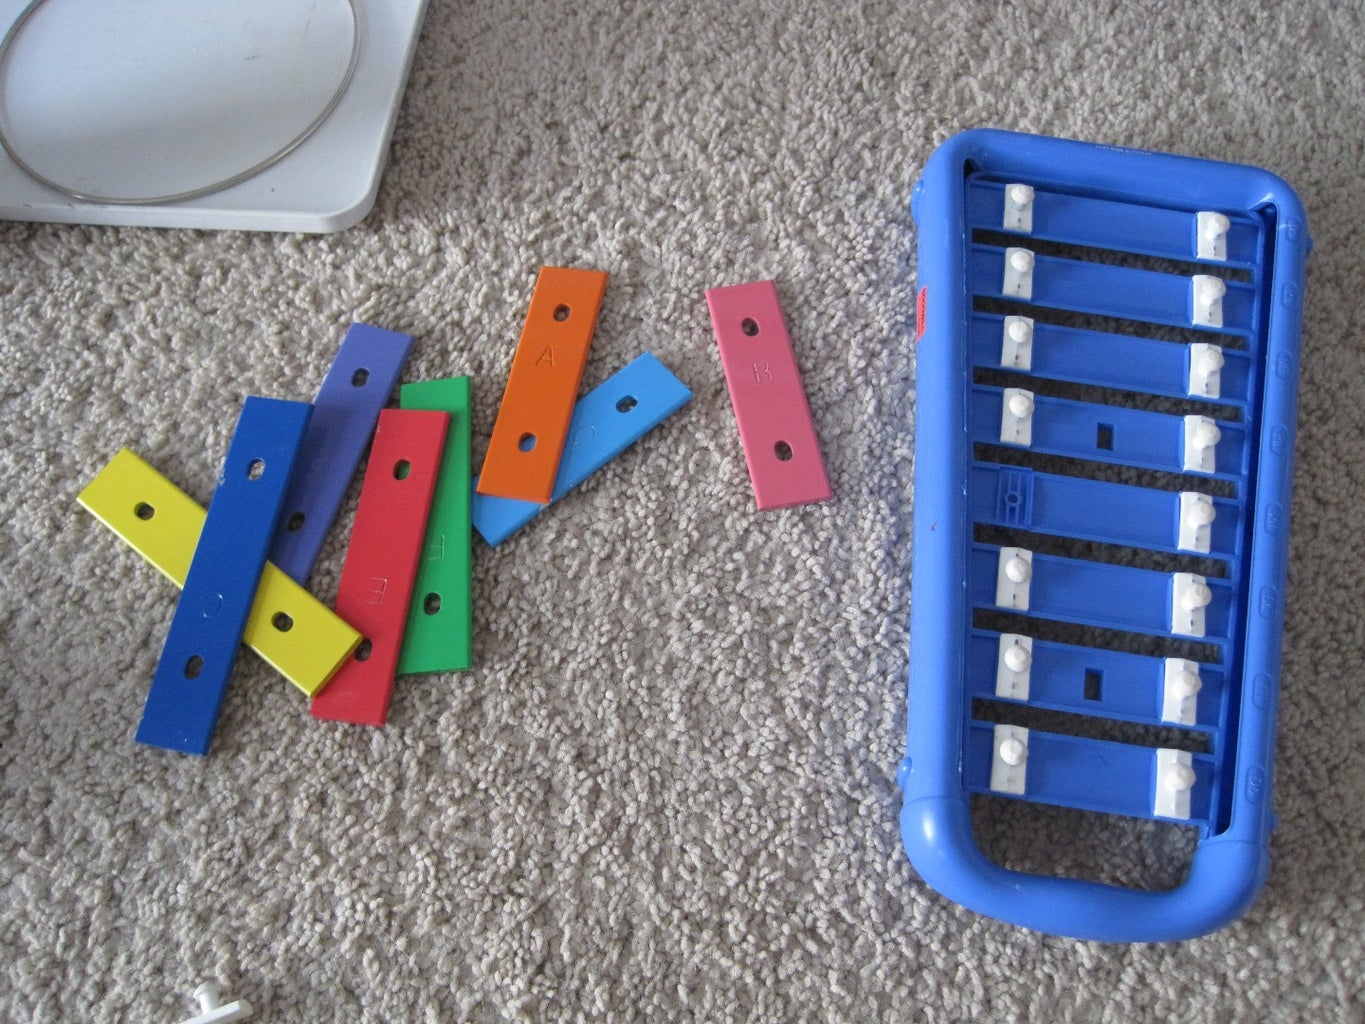 Disassemble the Xylophone